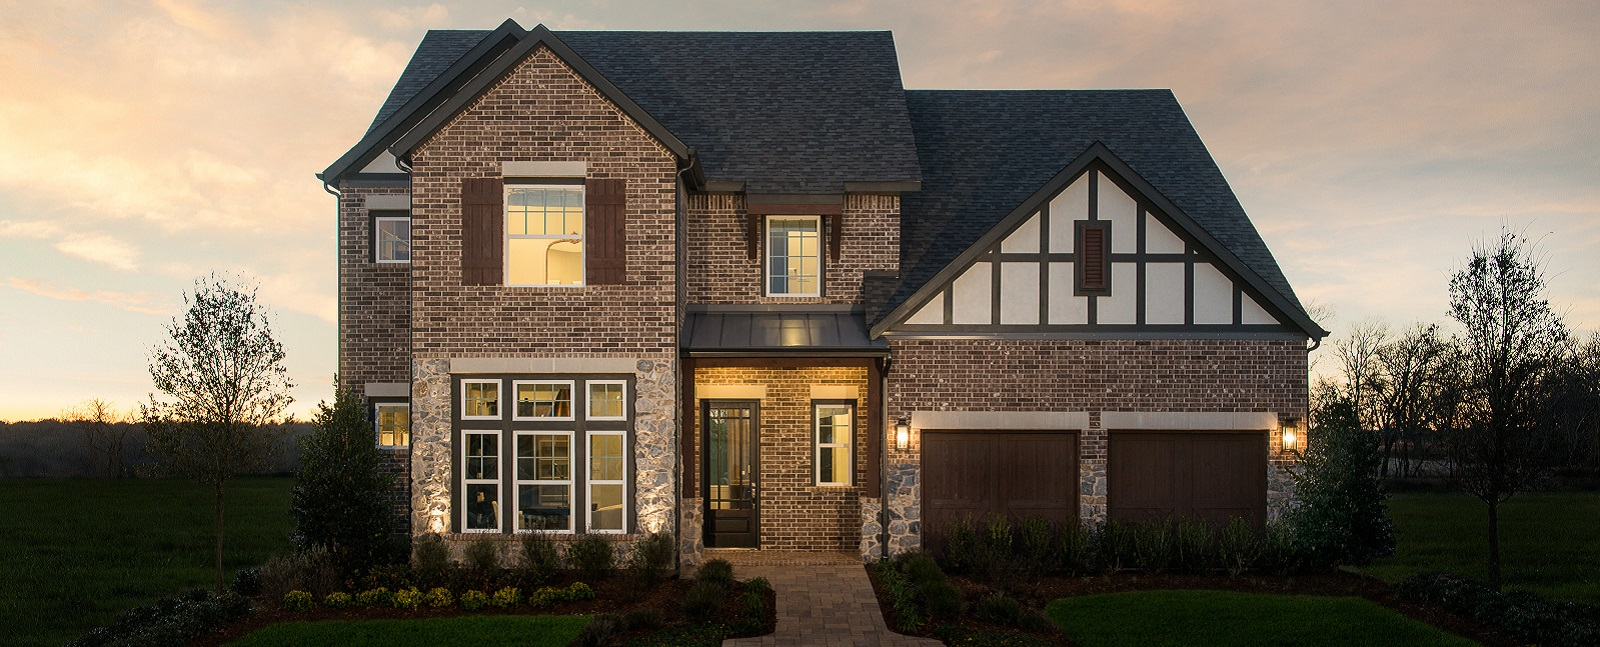 Allen Tx 60ft Single Family Homes In Montgomery Ridge Heritage Series Ashton Woods Your local dollar tree at cottonwood creek shopping center carries all the office supplies you need to run your small business, classroom, school, office, or church efficiently! ashton woods